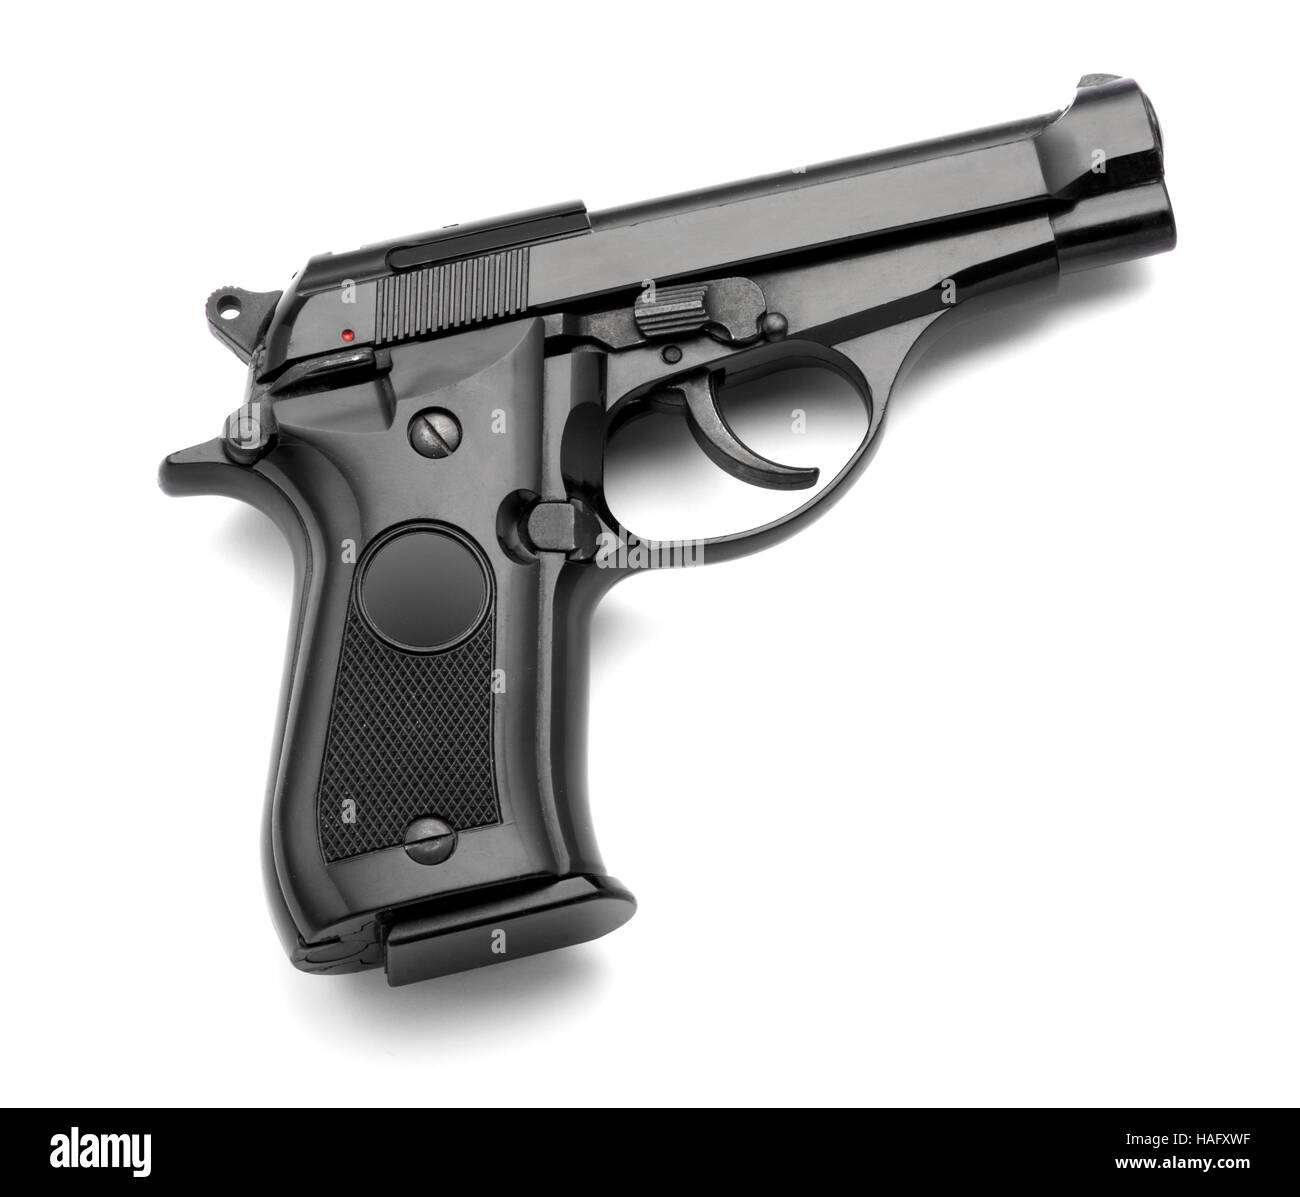 Black automatic handgun on a white background with copy space - Stock Image